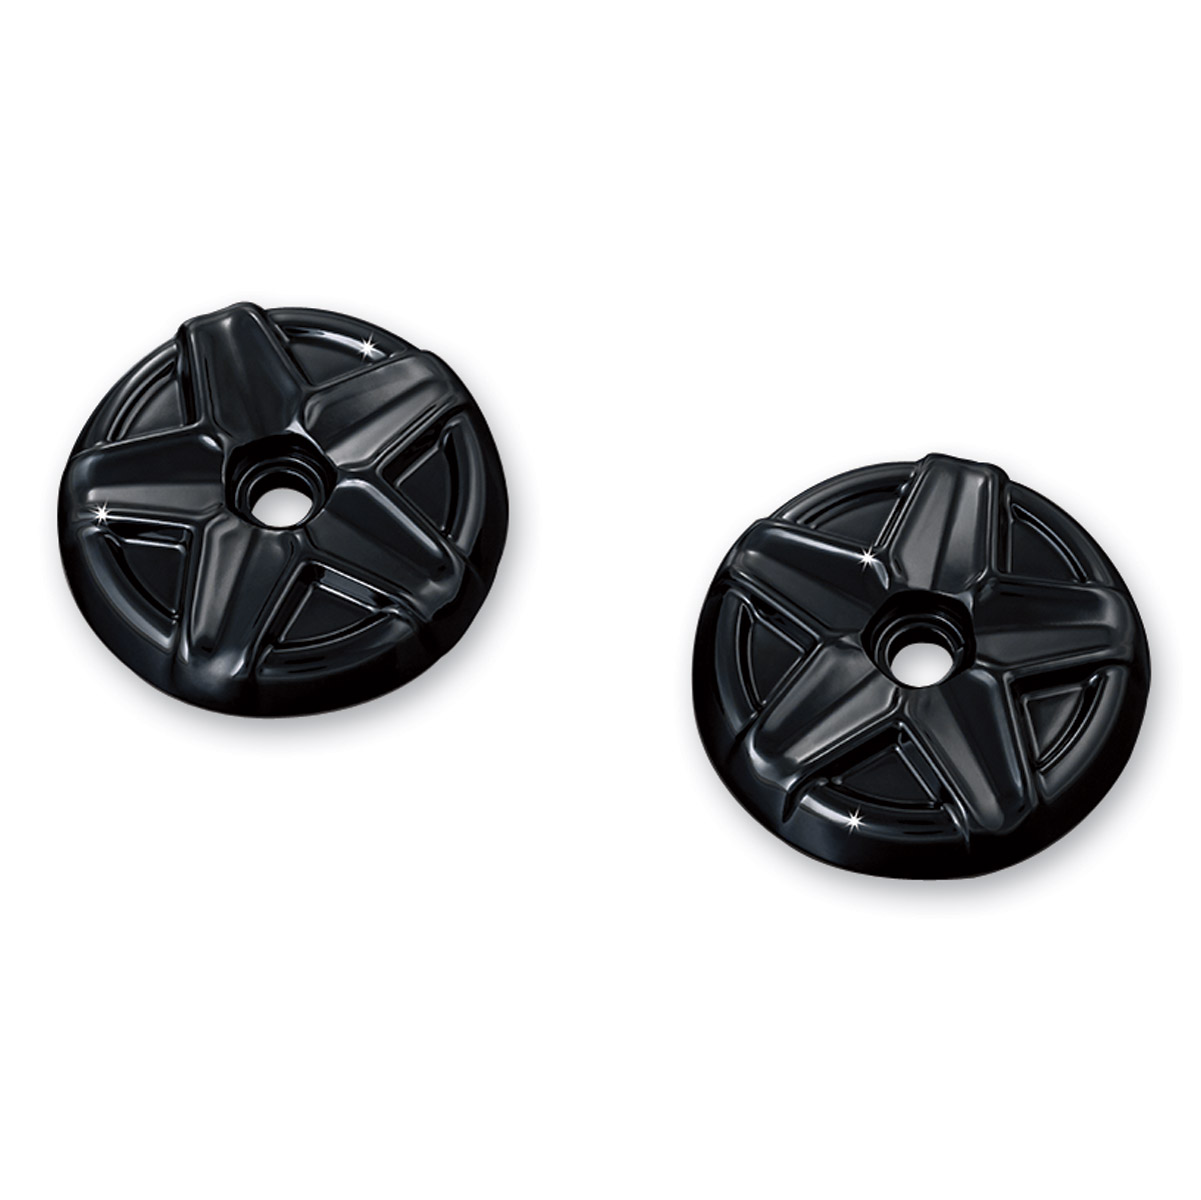 Kuryakyn Gloss Black Five-Spoke End Caps for Kinetic Grips